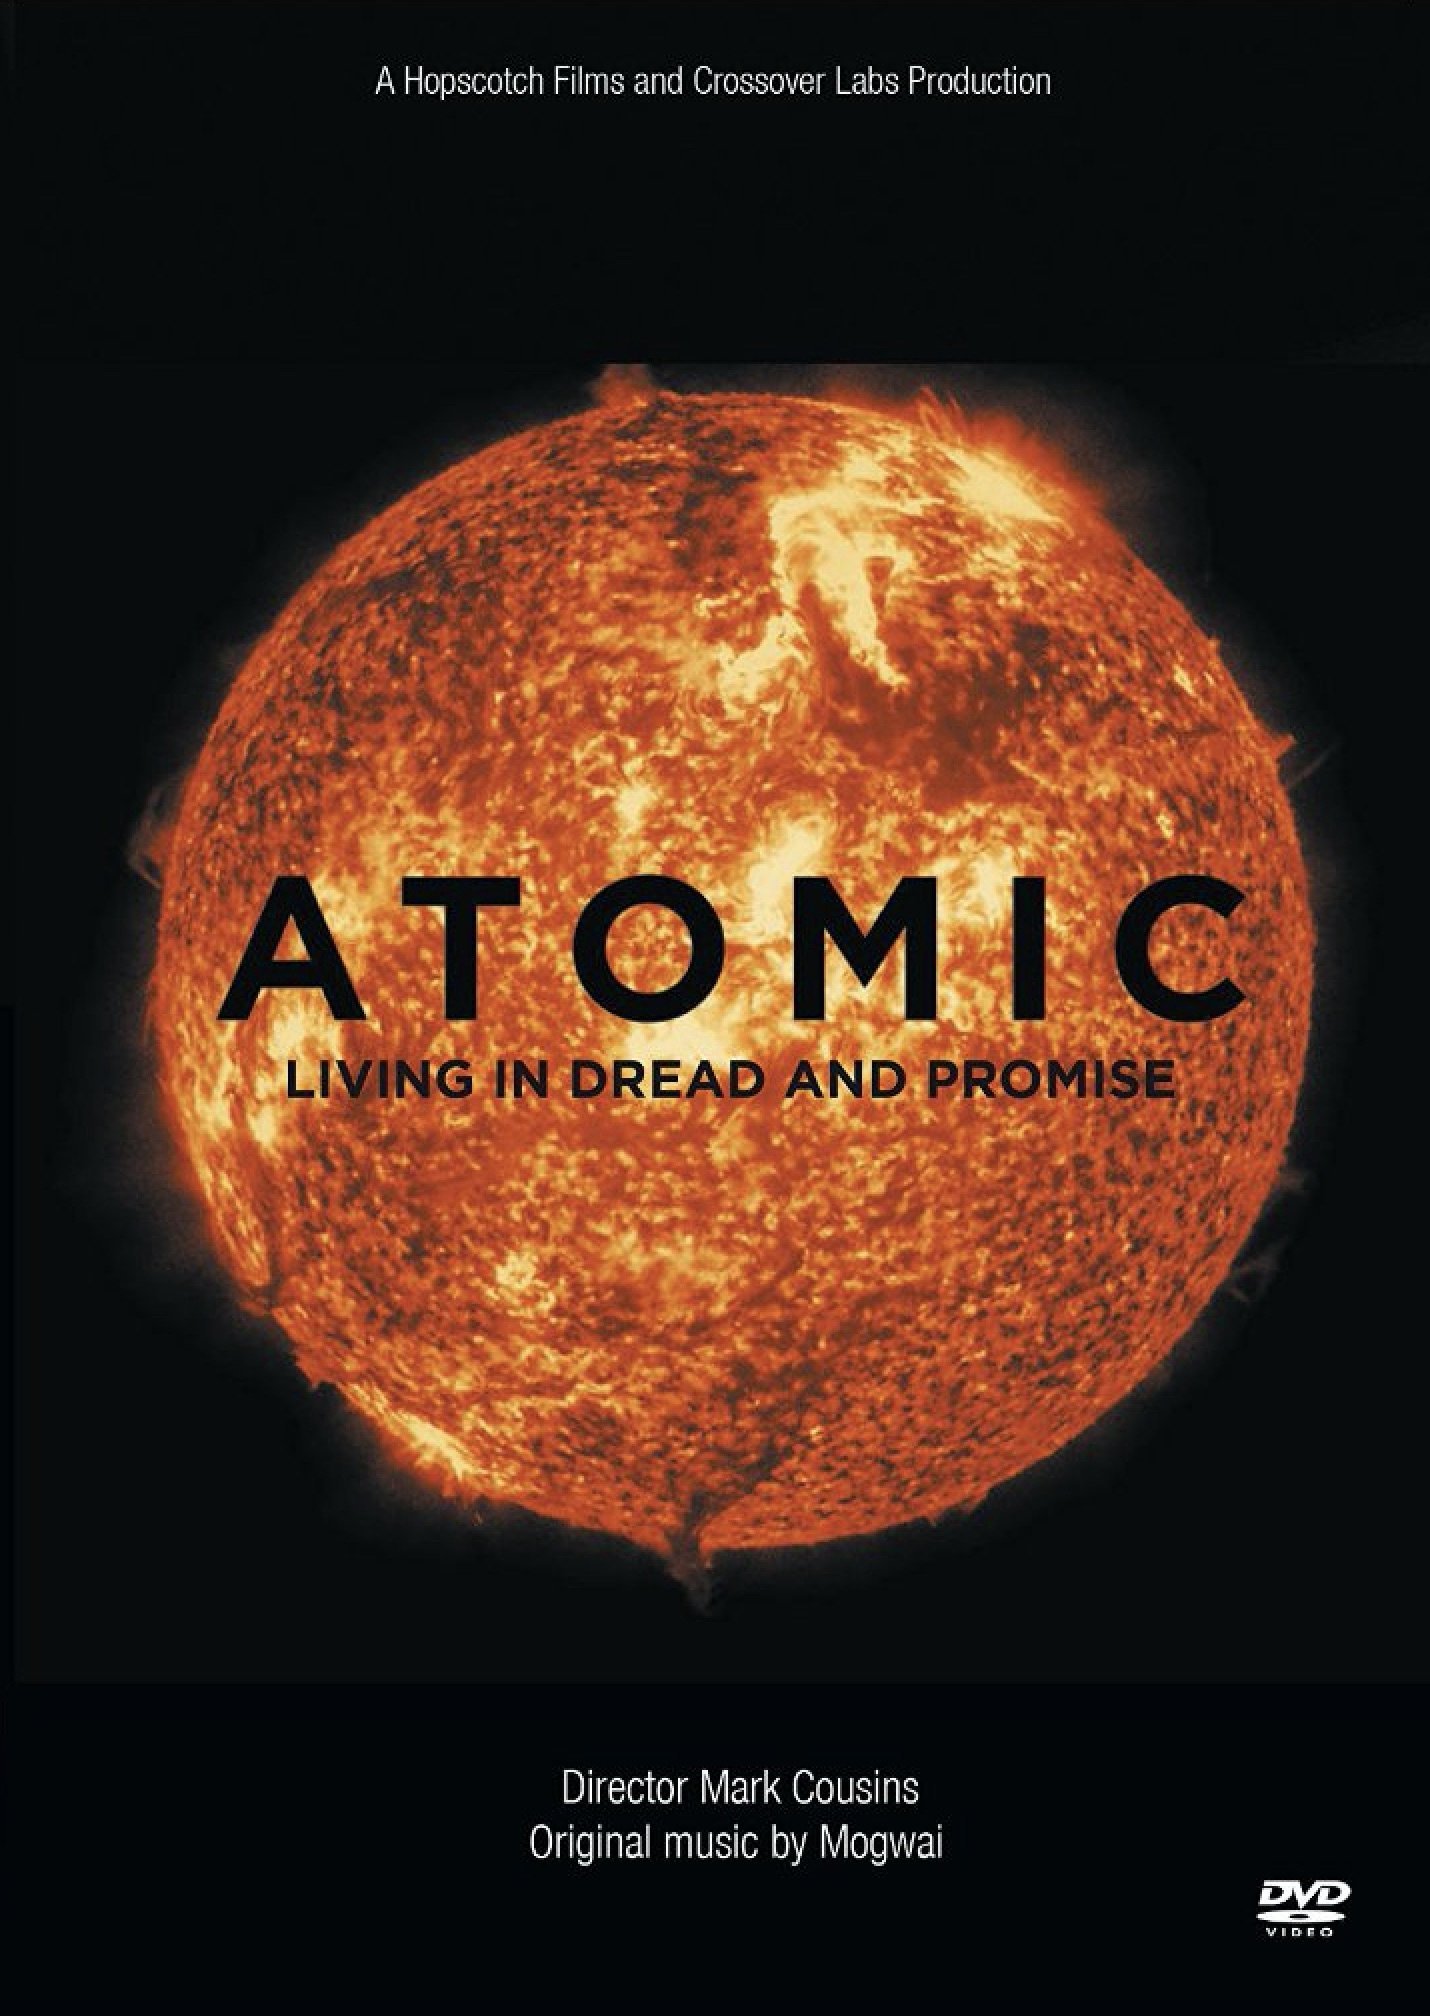 BBC Storyville - Atomic: Living in Dread and Promise (2015)